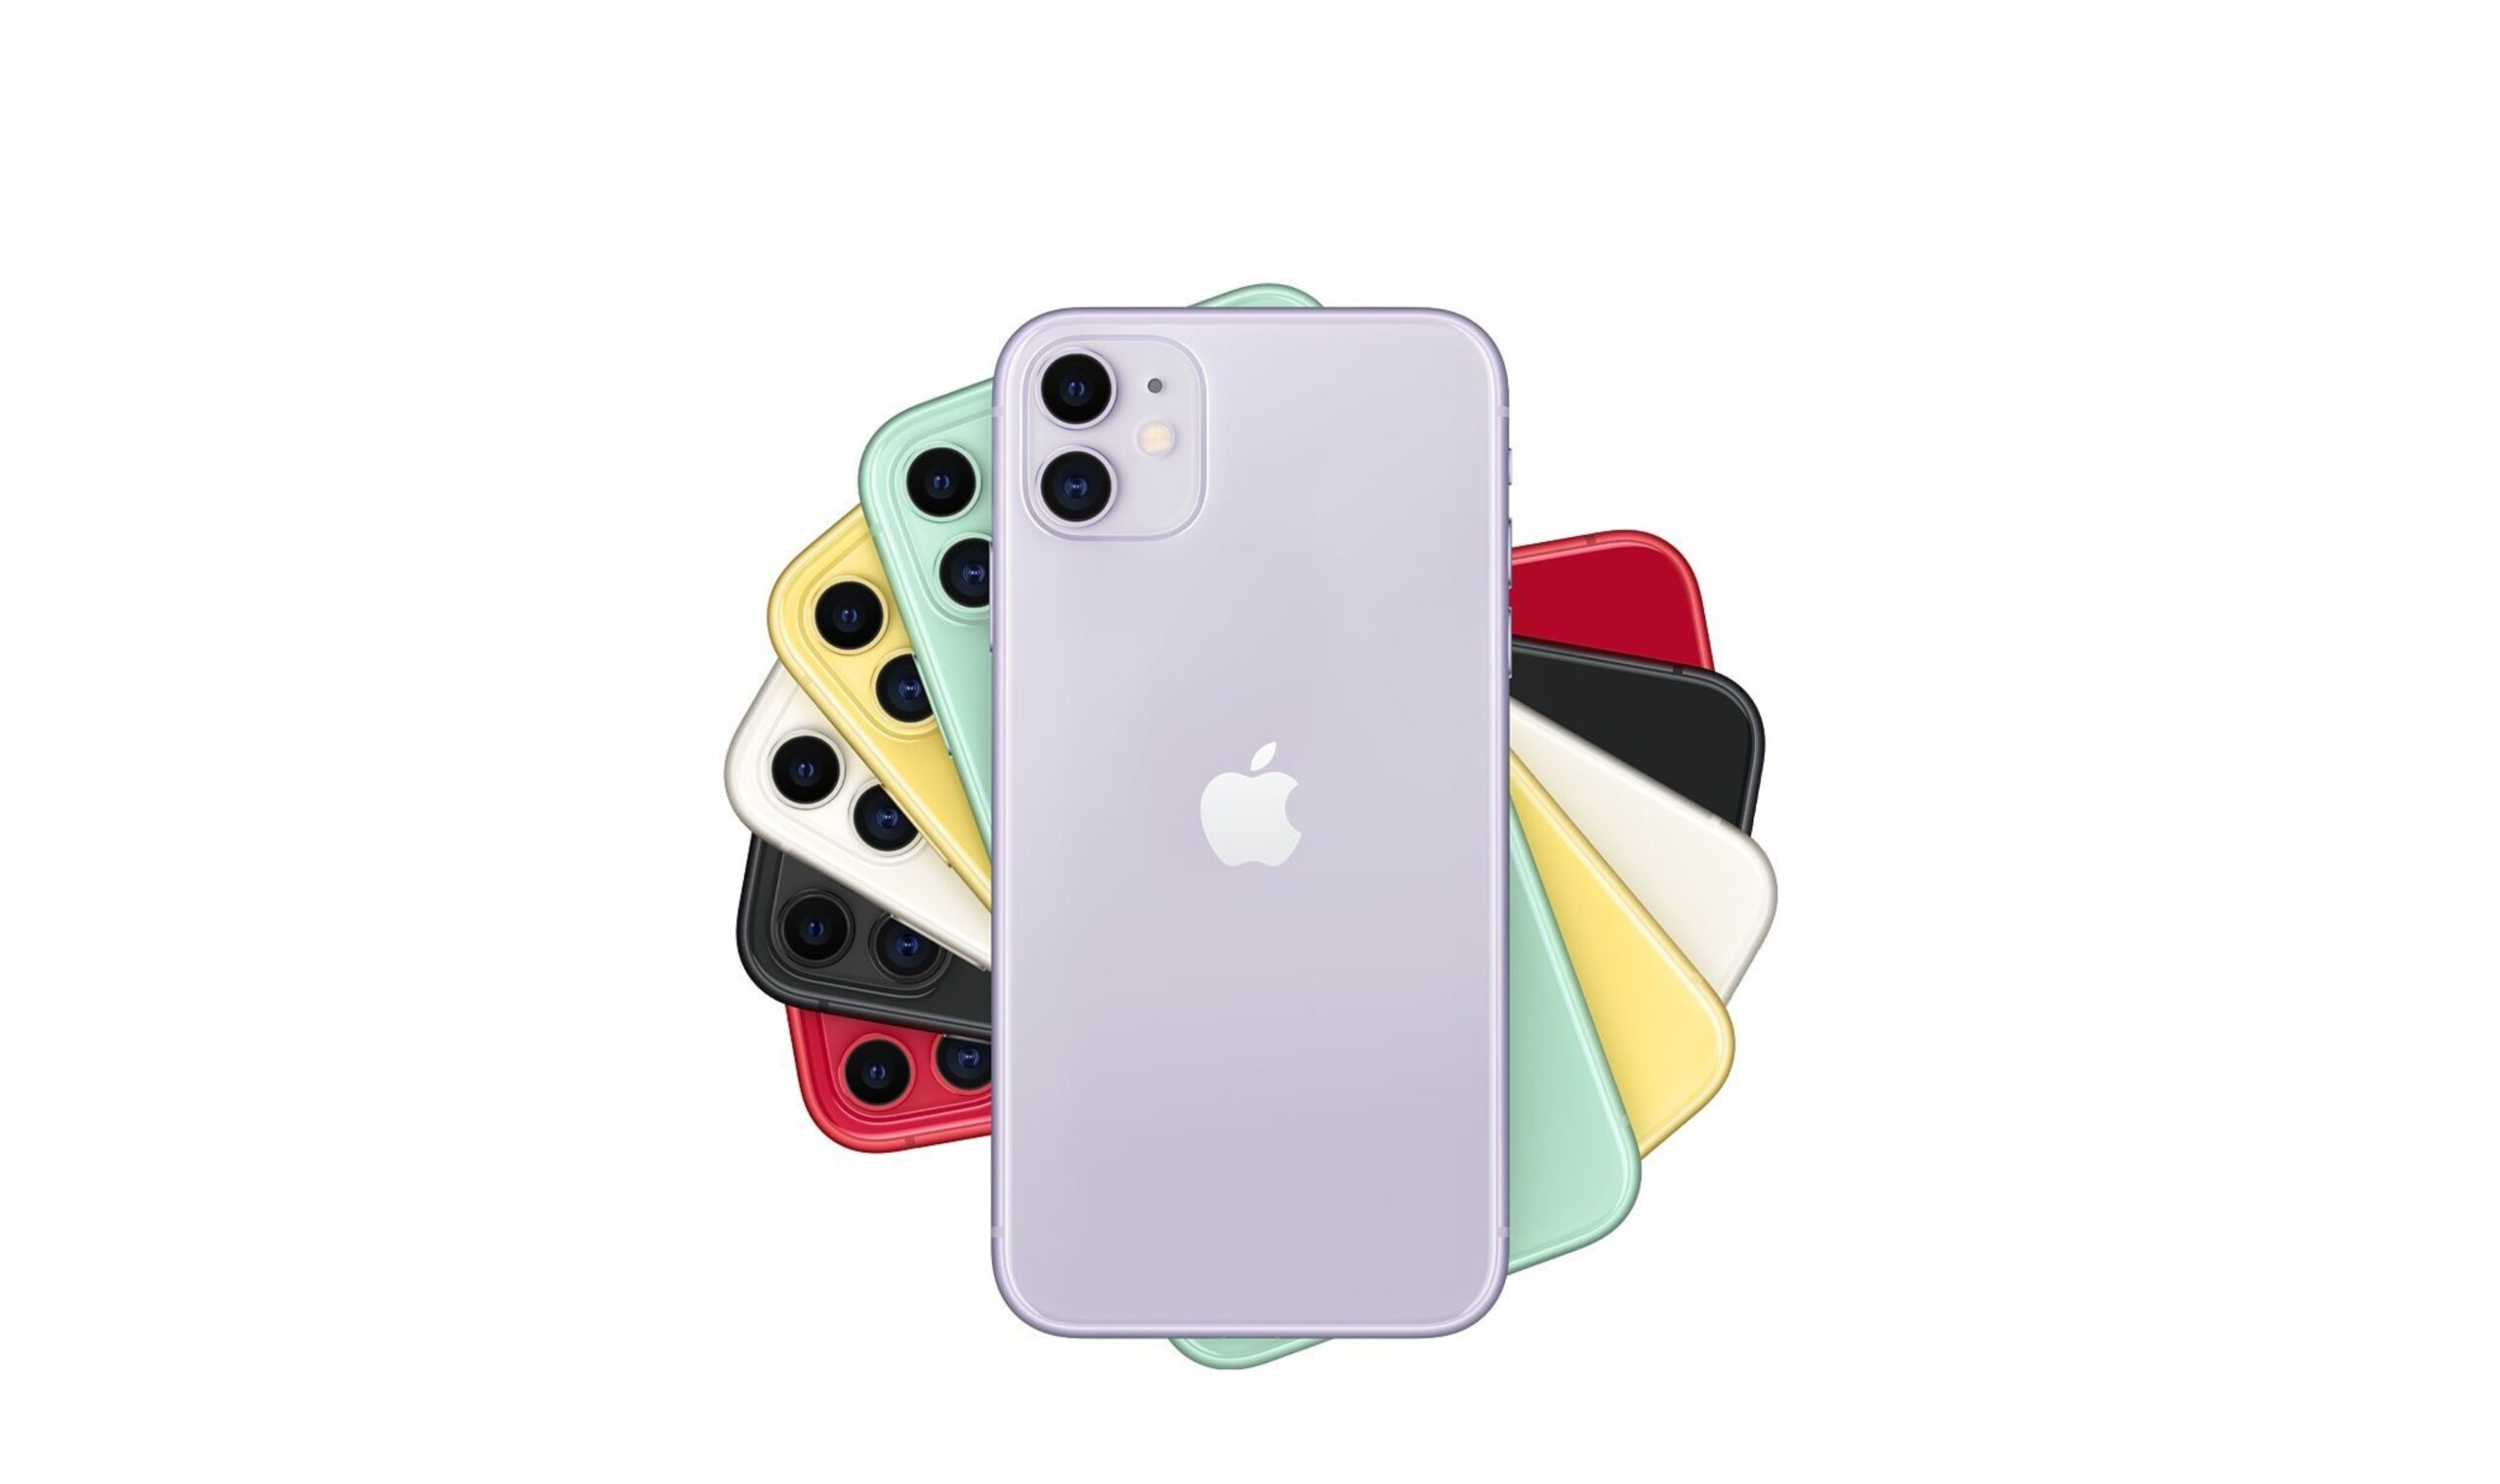 Apple iPhone 11 was the best selling smartphone in the world in H1 2020